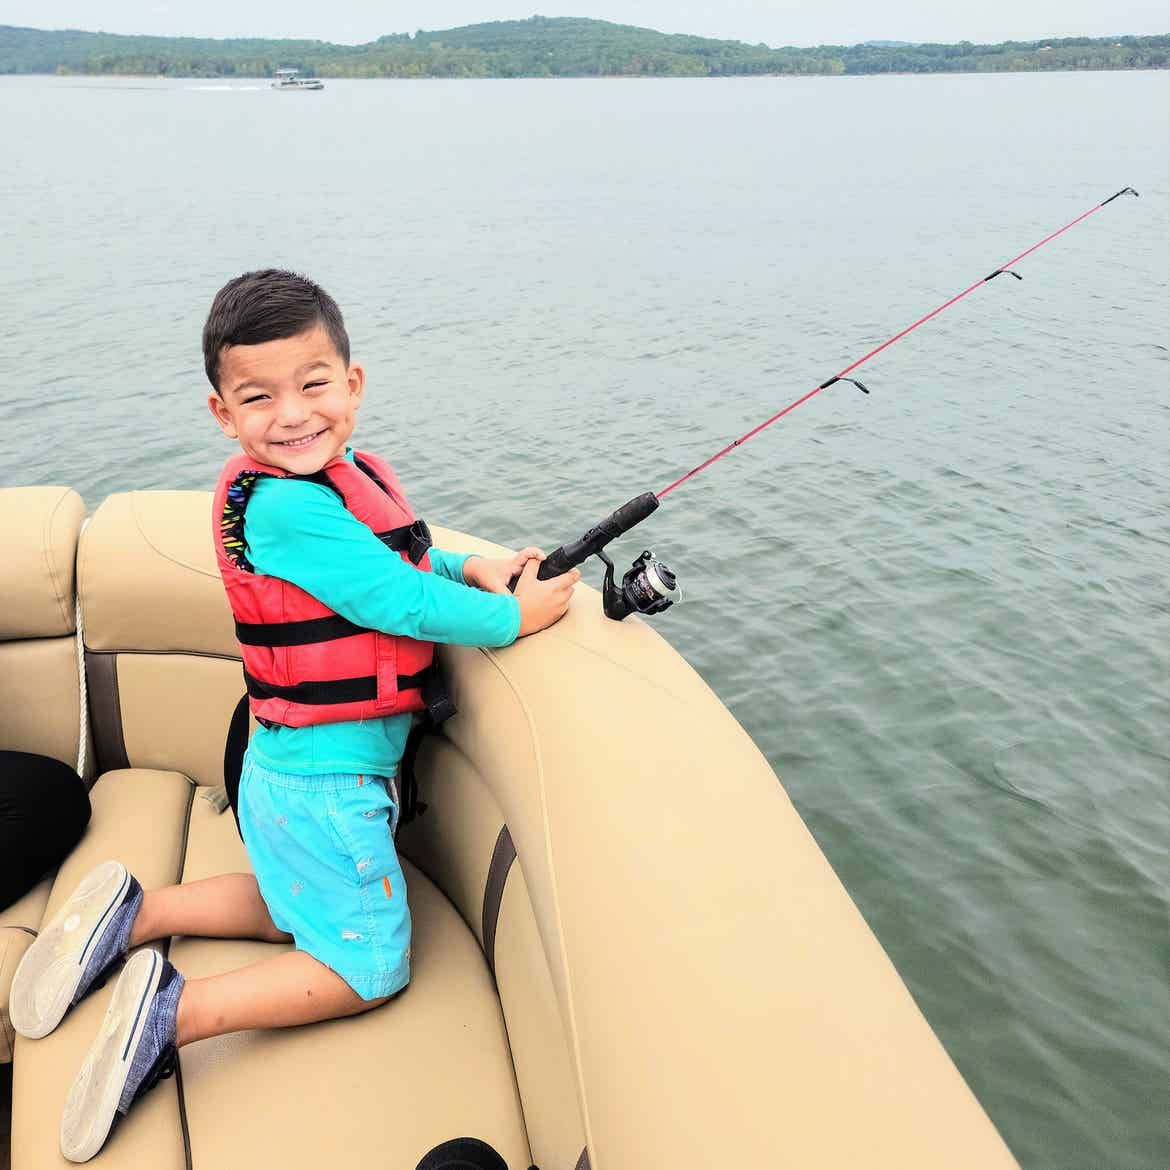 Angelica's son goes fishing off the side of a tritoon wearing a life jacket and aqua swimwear.